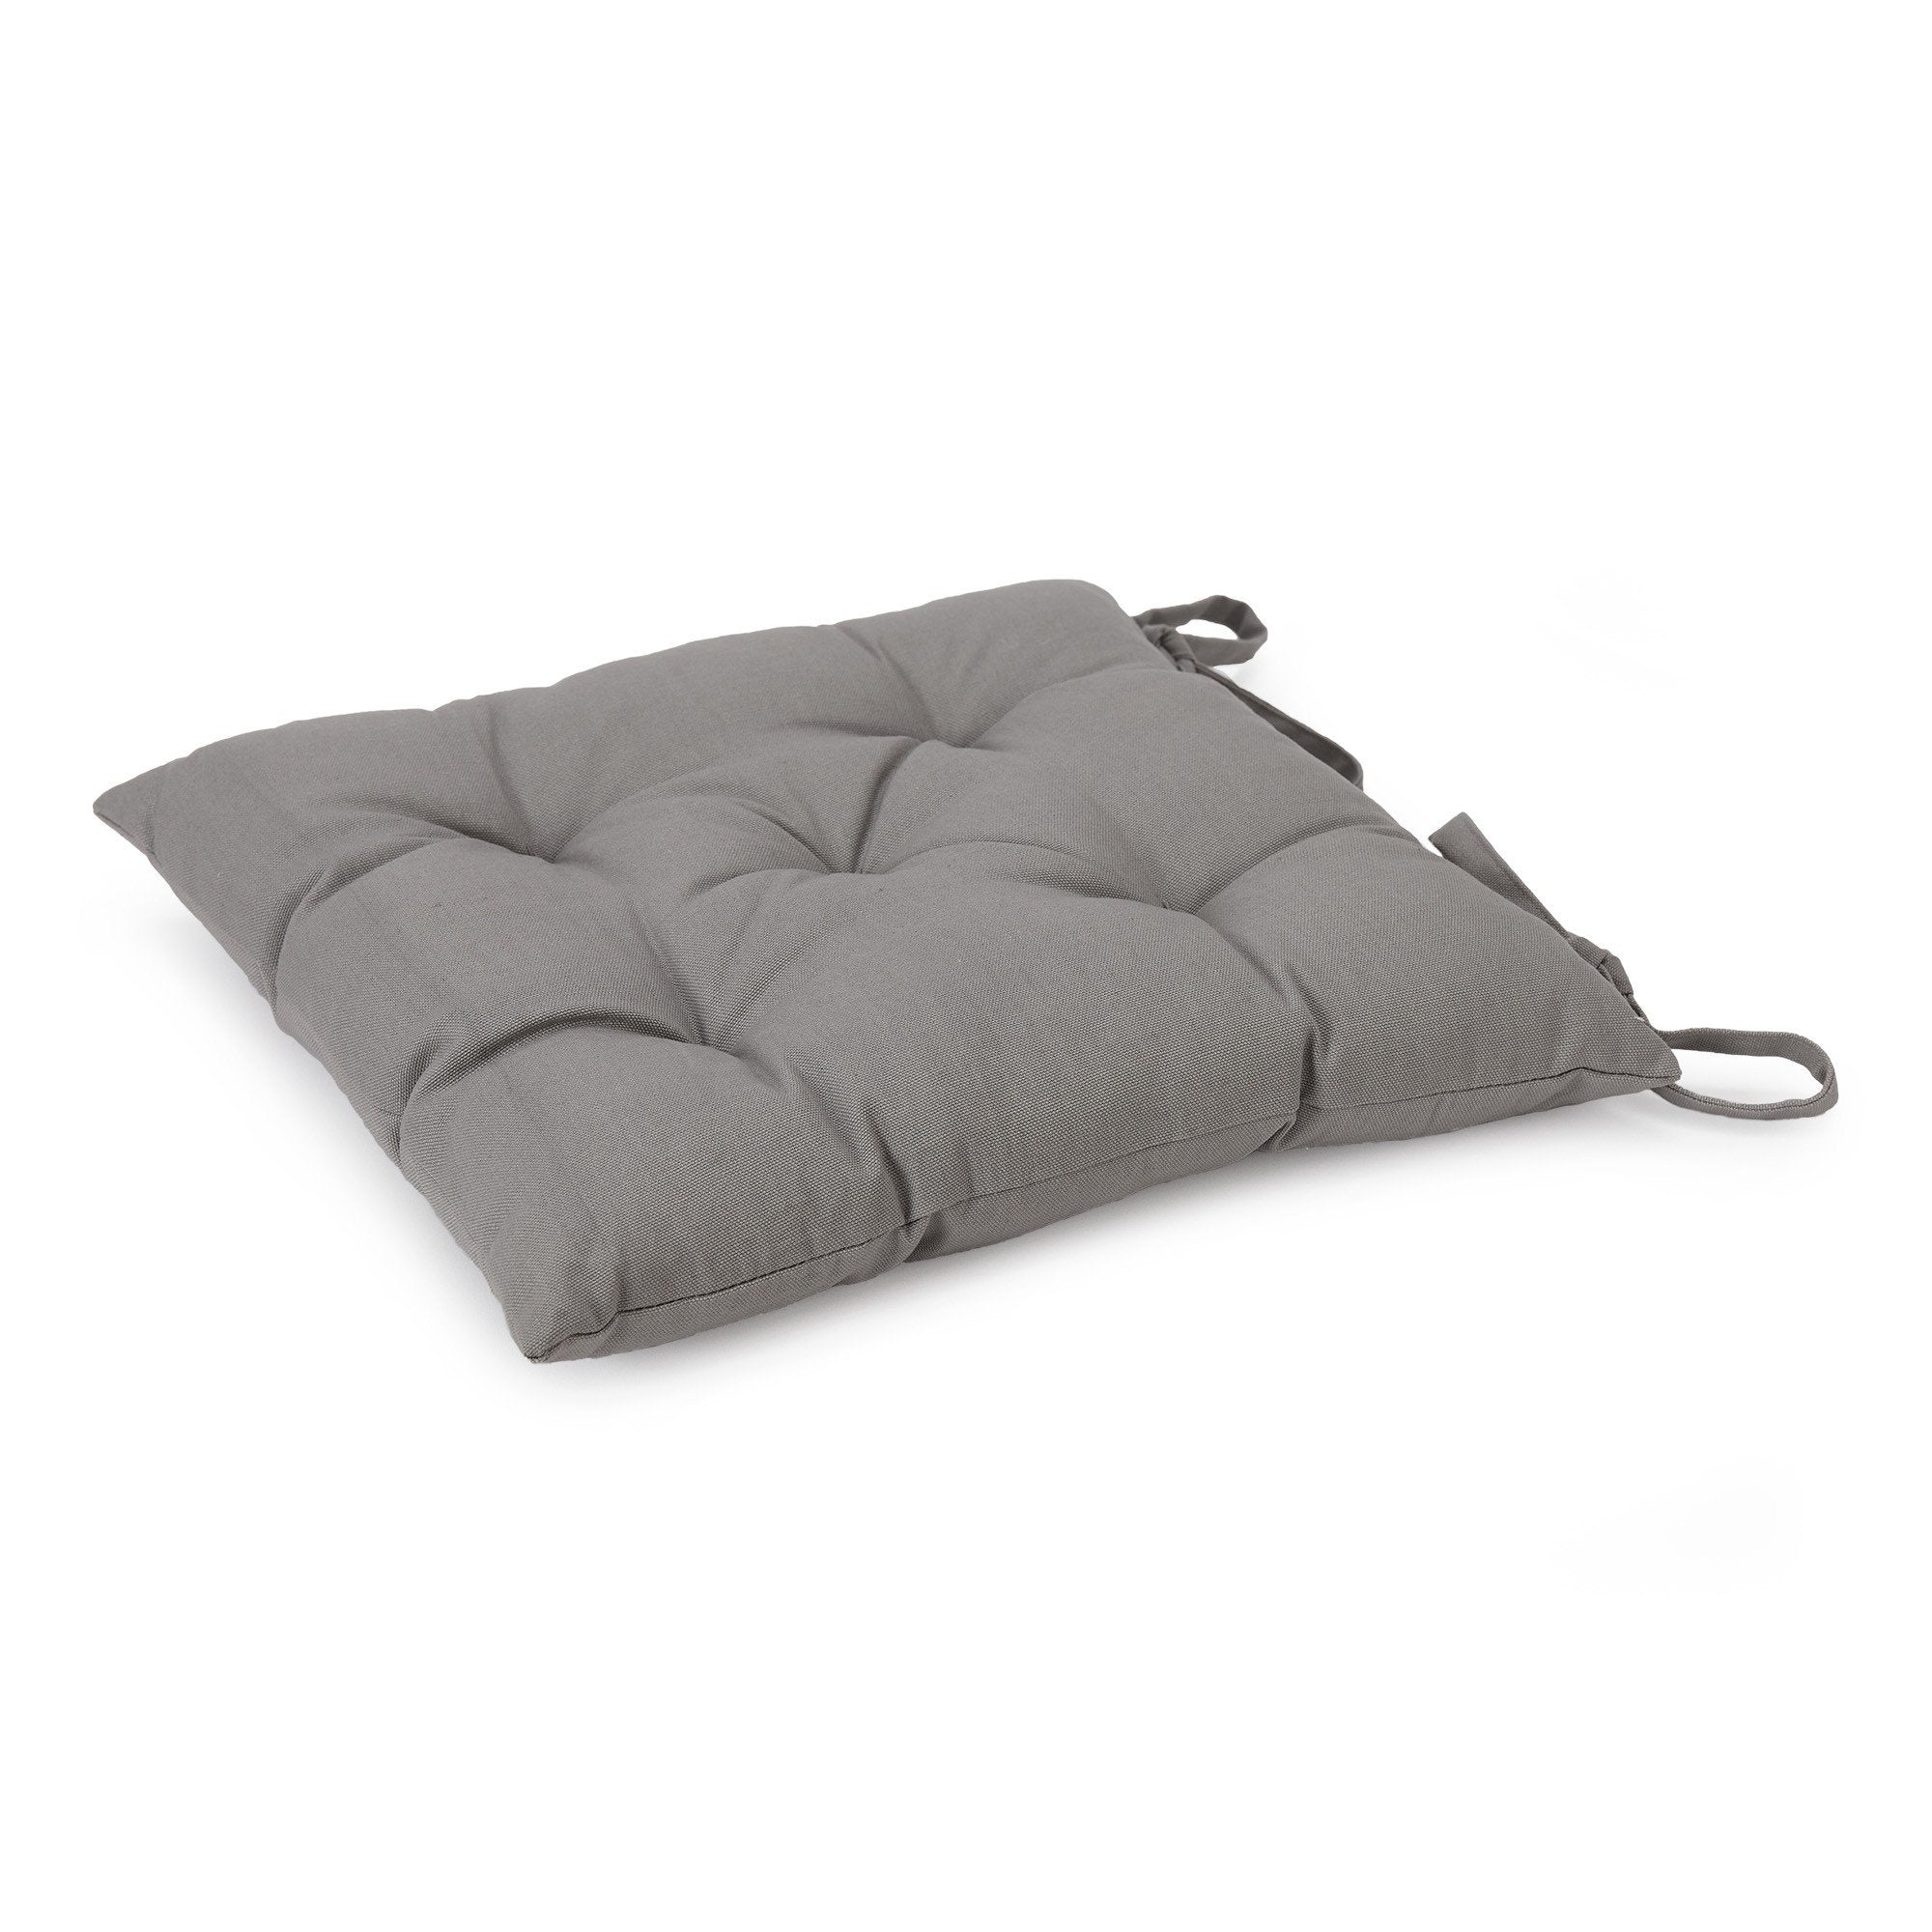 Isaka cushion, light grey, 100% cotton & 100% polyester